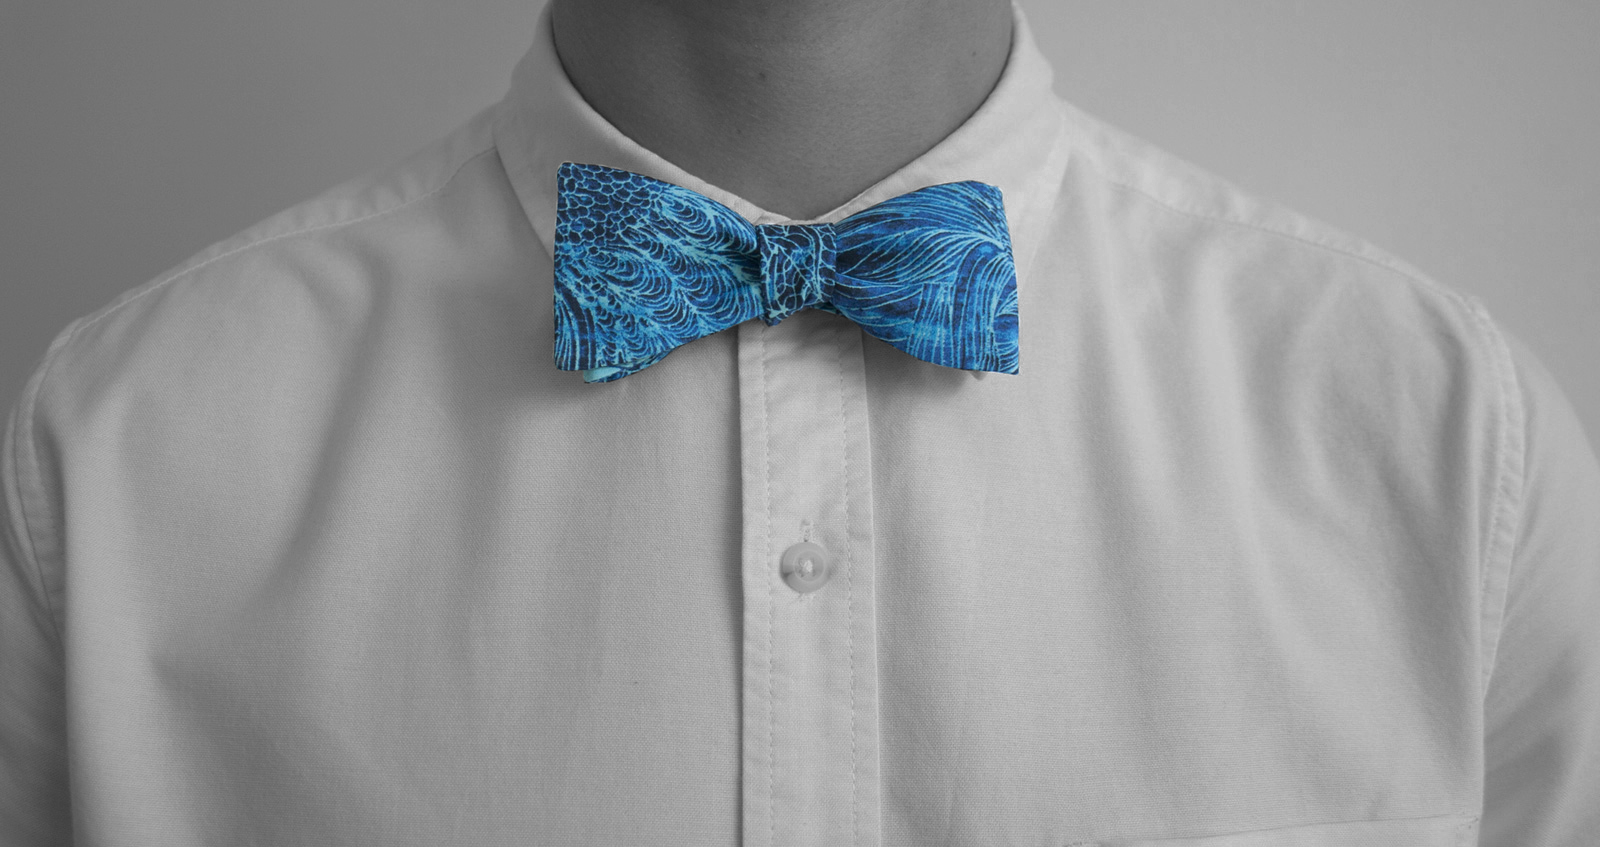 Freelance Bow Ties   We're currently in the process of restocking and rejigging things so nothing is for sale at the moment. We're sorry about that. Follow us on instagram to keep up with the latest